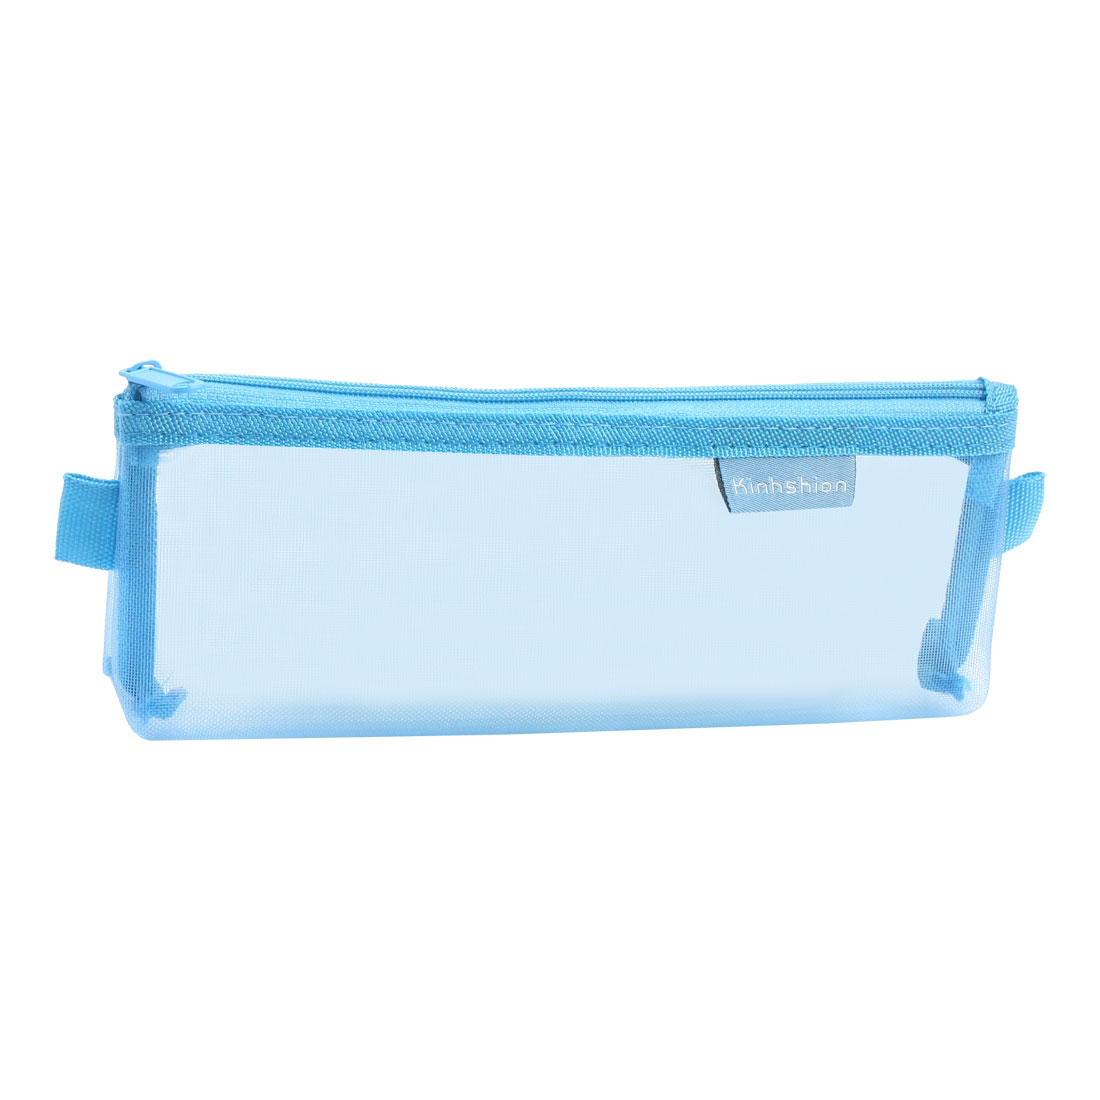 Zip up Nylon Mesh Pencil Pen Stationary Organizer Case Bag Blue for Students